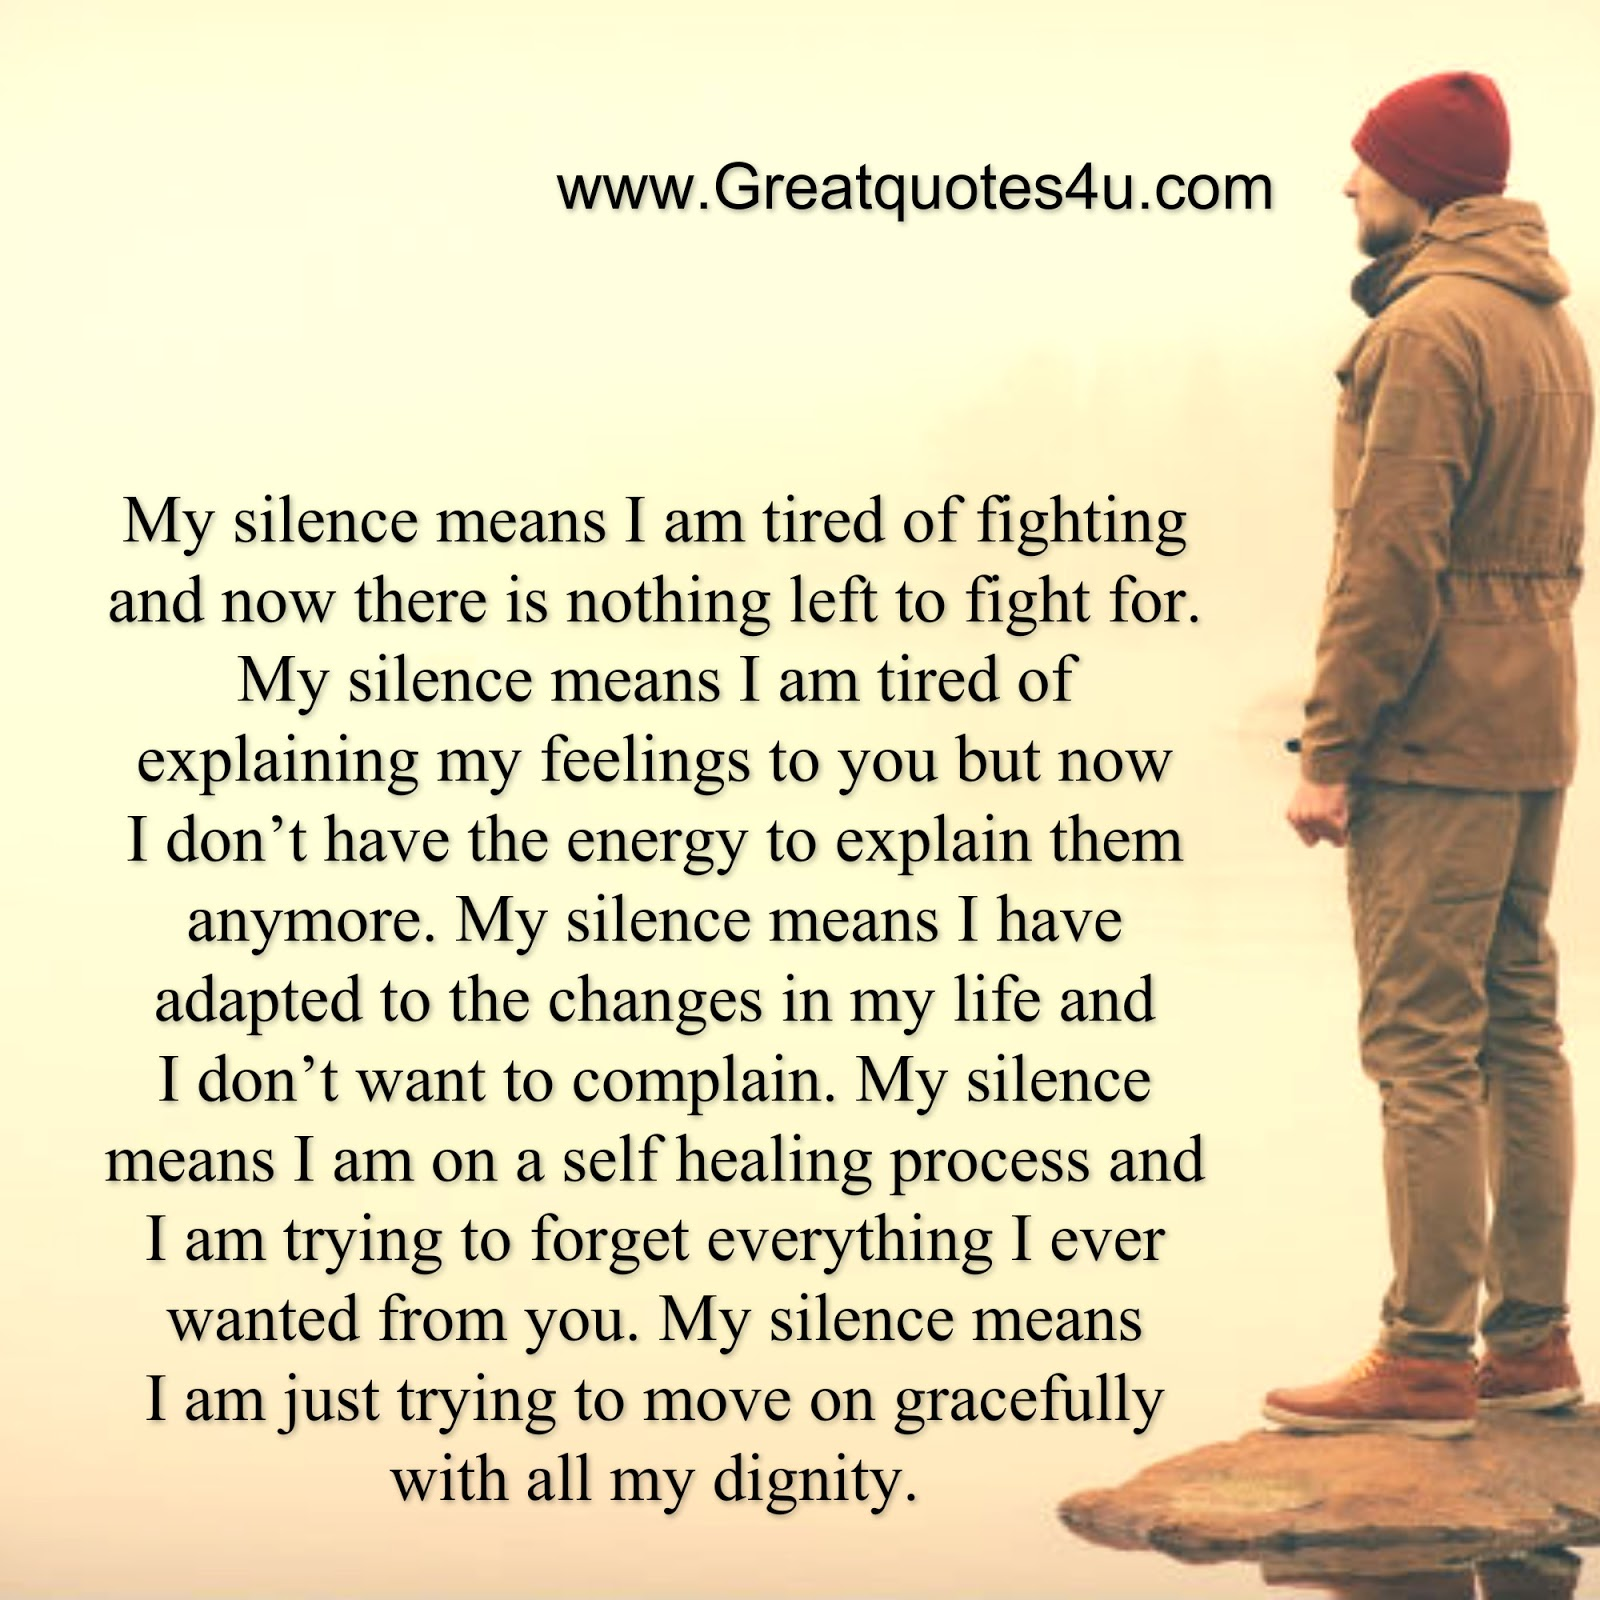 Awesome Quotes: My Silence Means